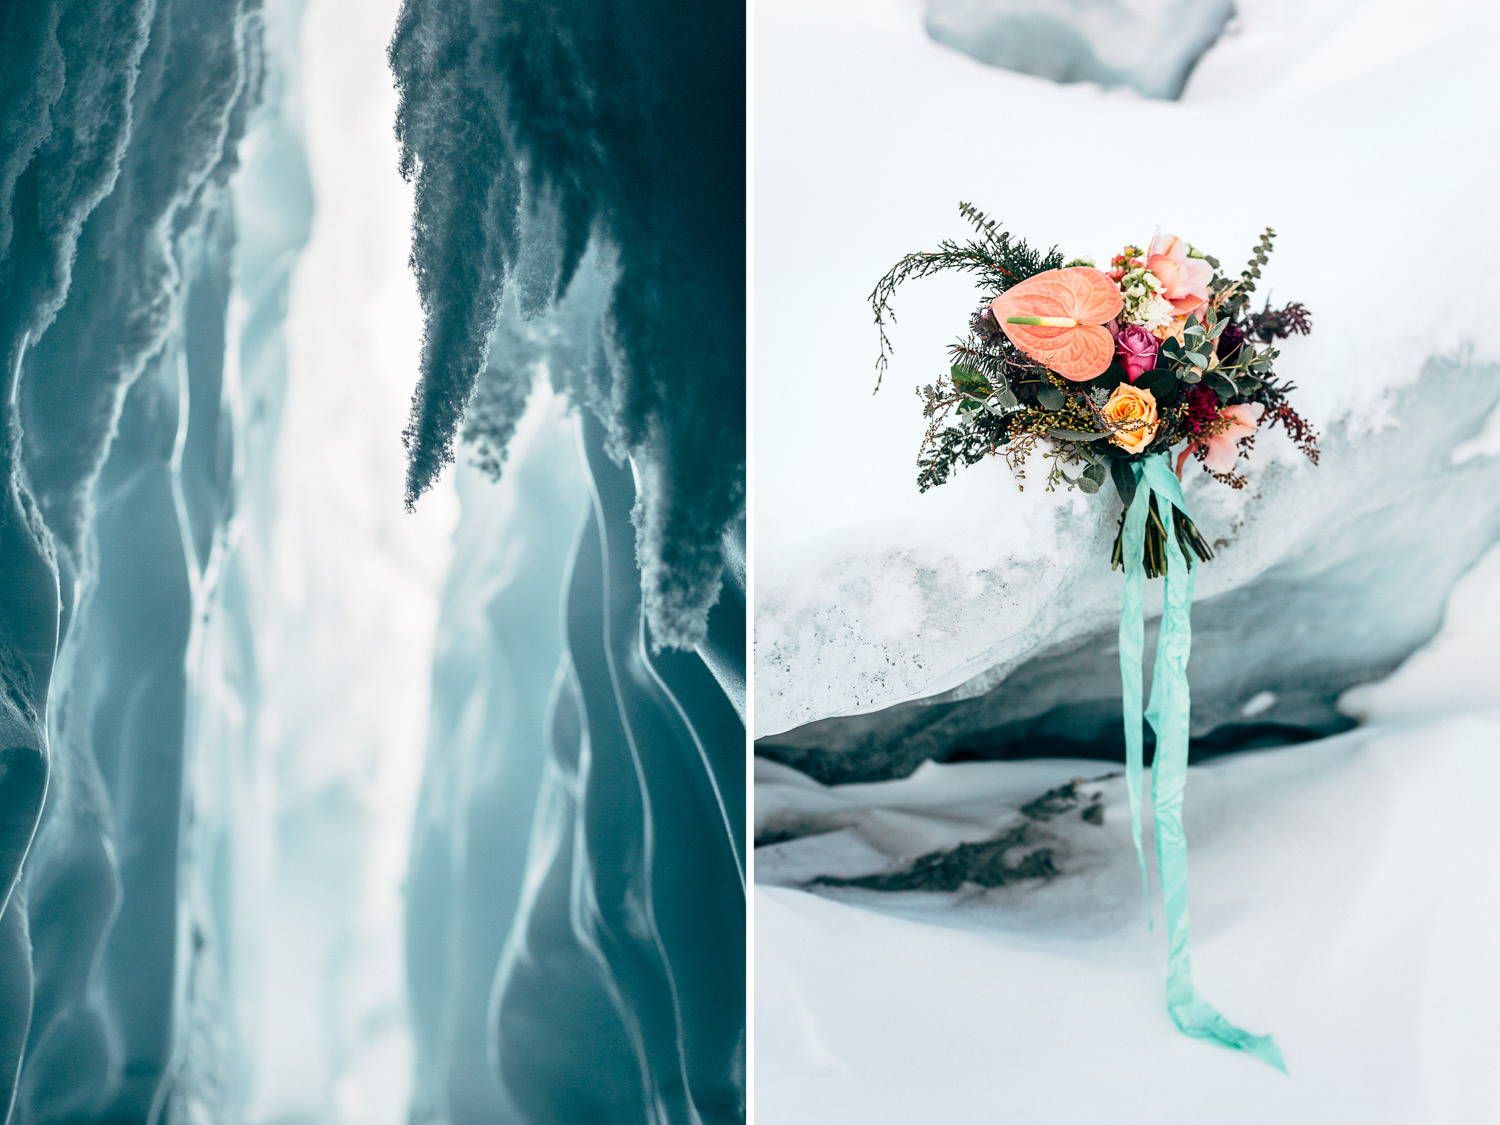 Ice cave and bouquet